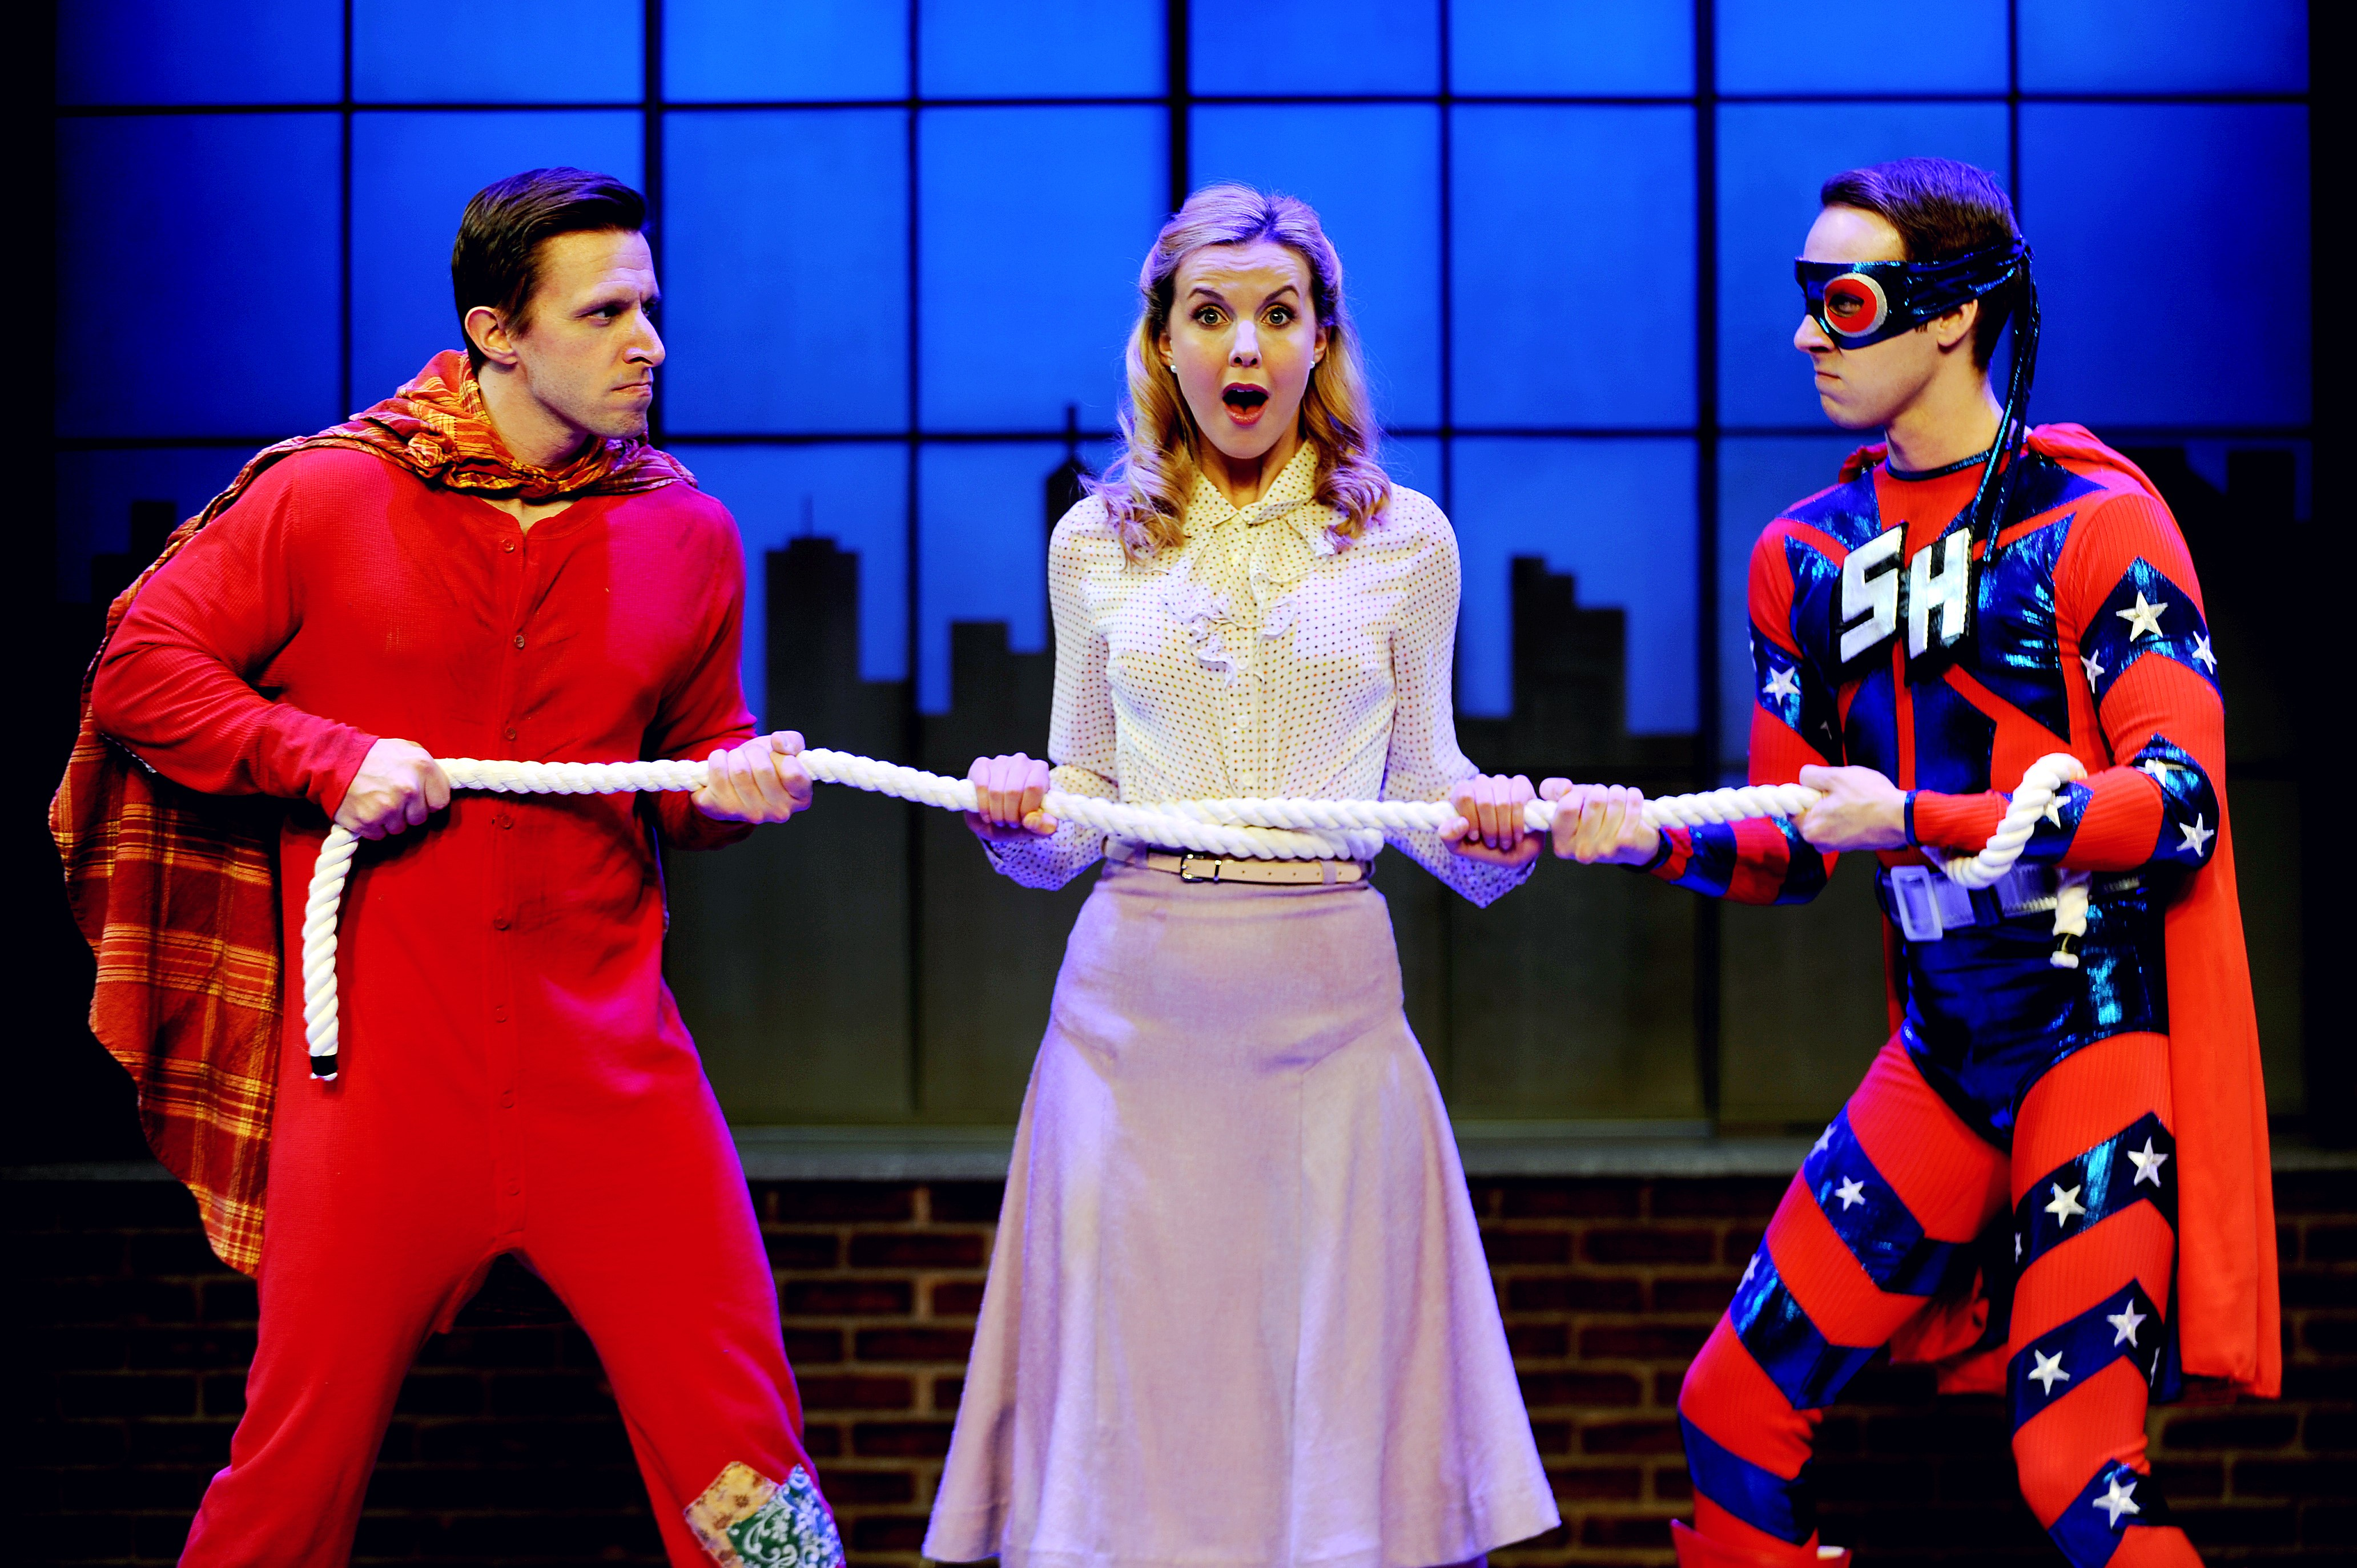 There's a tug of war with a woman in the middle in CLO Cabaret's 'Up and Away.' (l. to r.) Michael Greer, Erika Strasburg, and John Wascavage. Photo: Matt Polk.